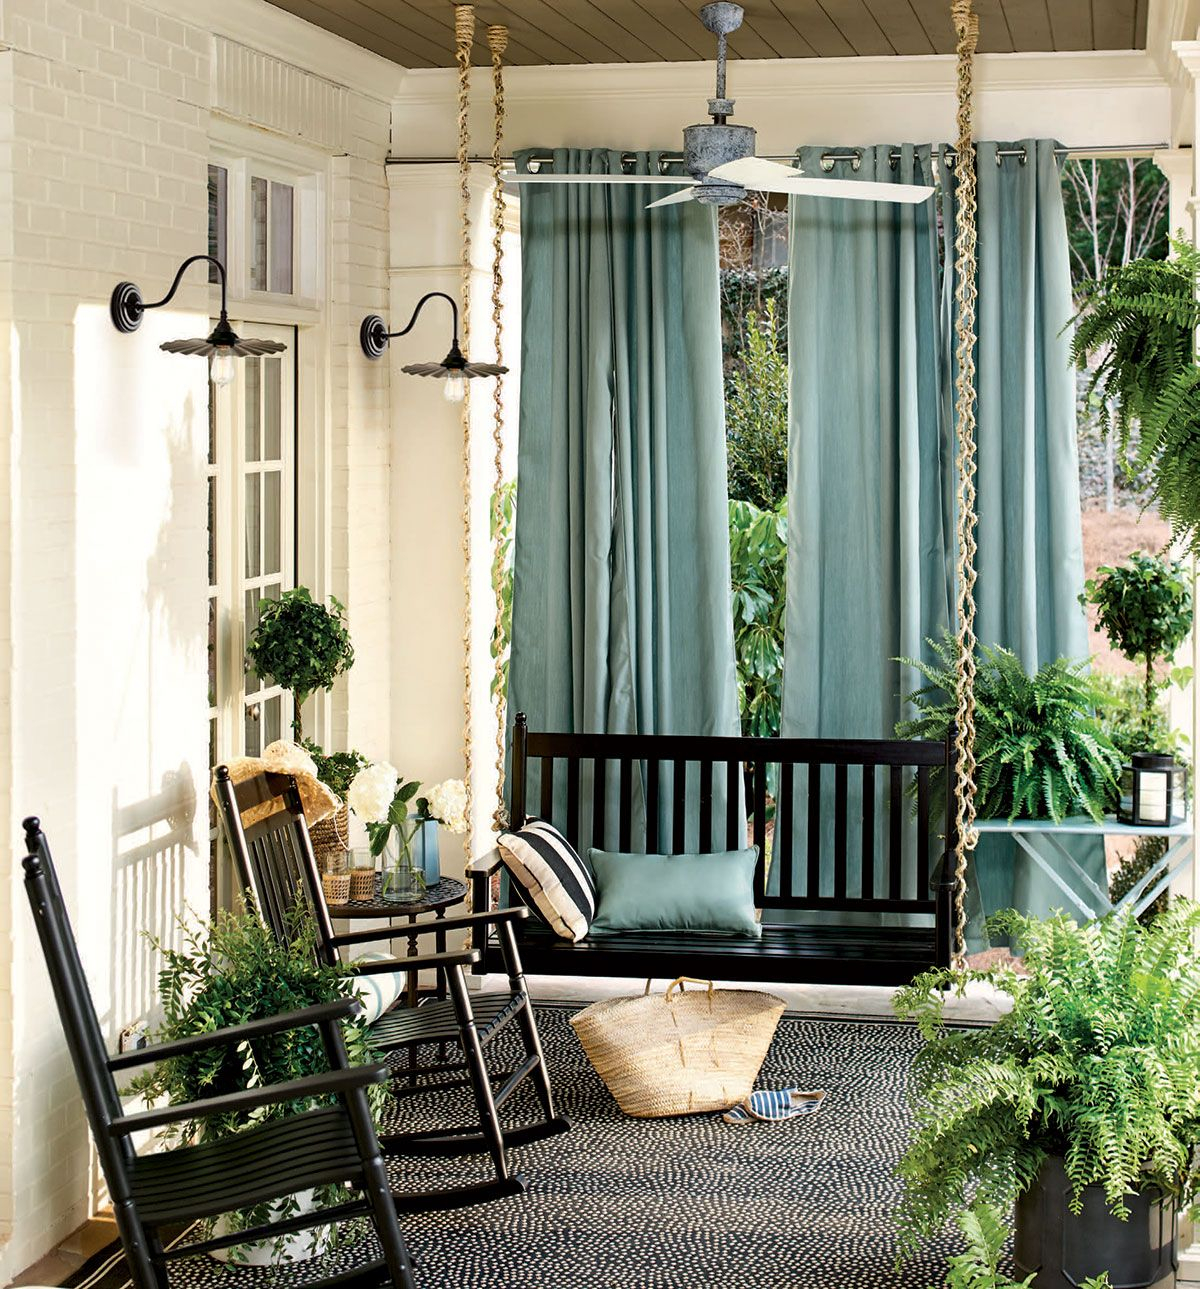 Outdoor Spaces Decorating Ideas In 2019 For The Home Porch